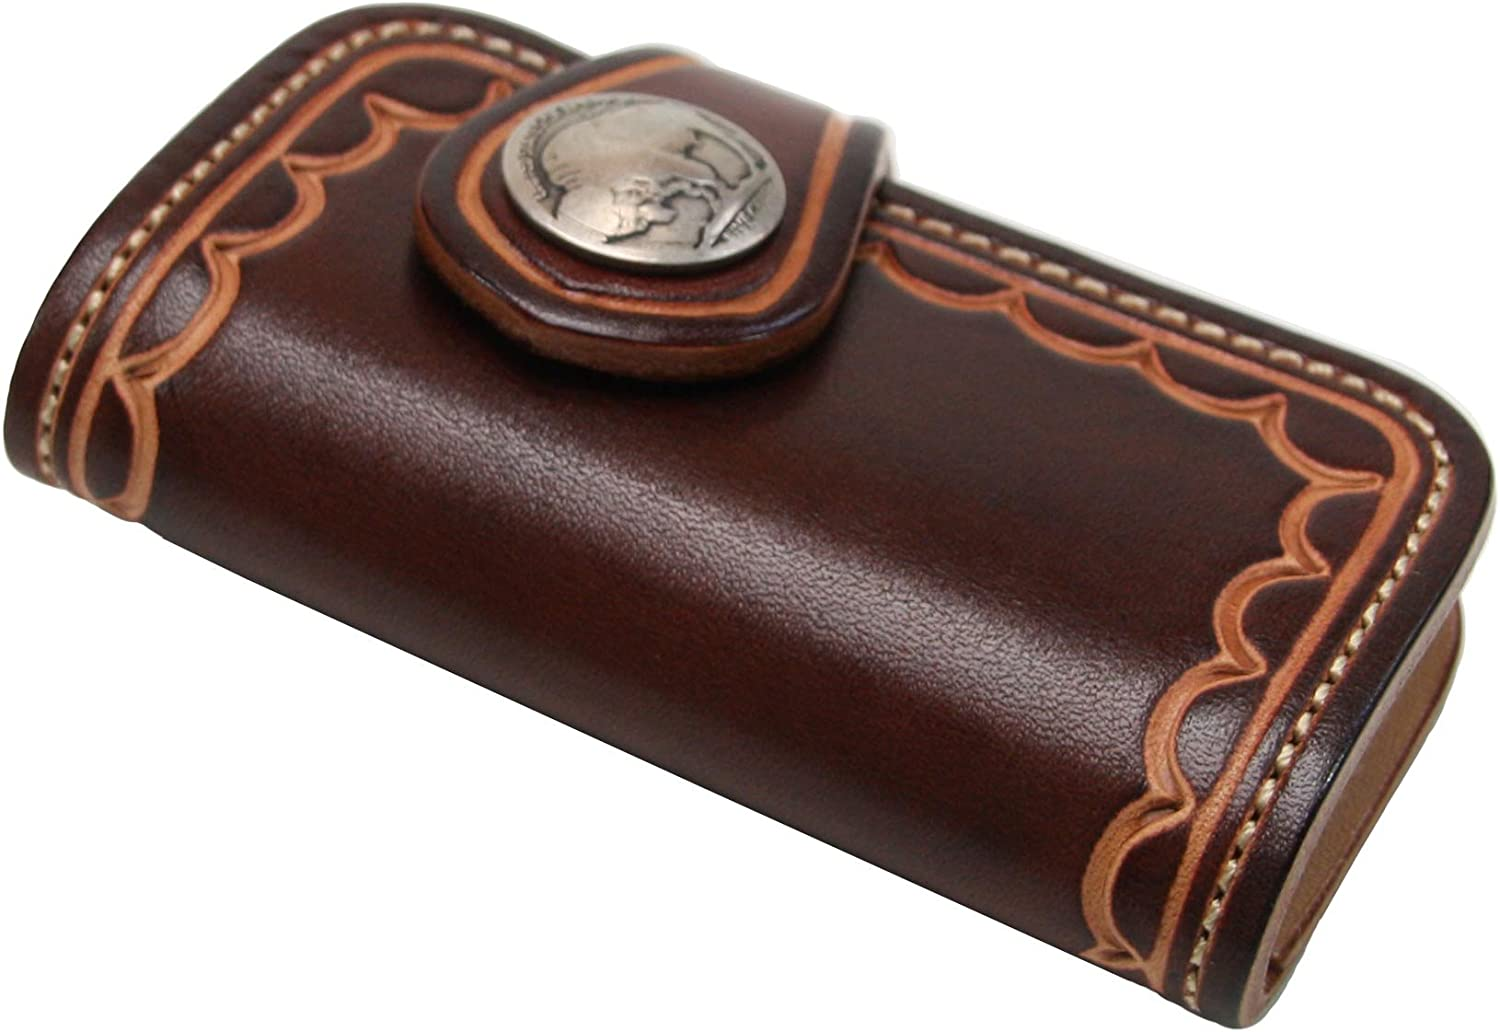 KC,s Leather GENUINE COWHIDE KEY CASE APPALOOSA HANDSTAMP Concho Handmade In Japan